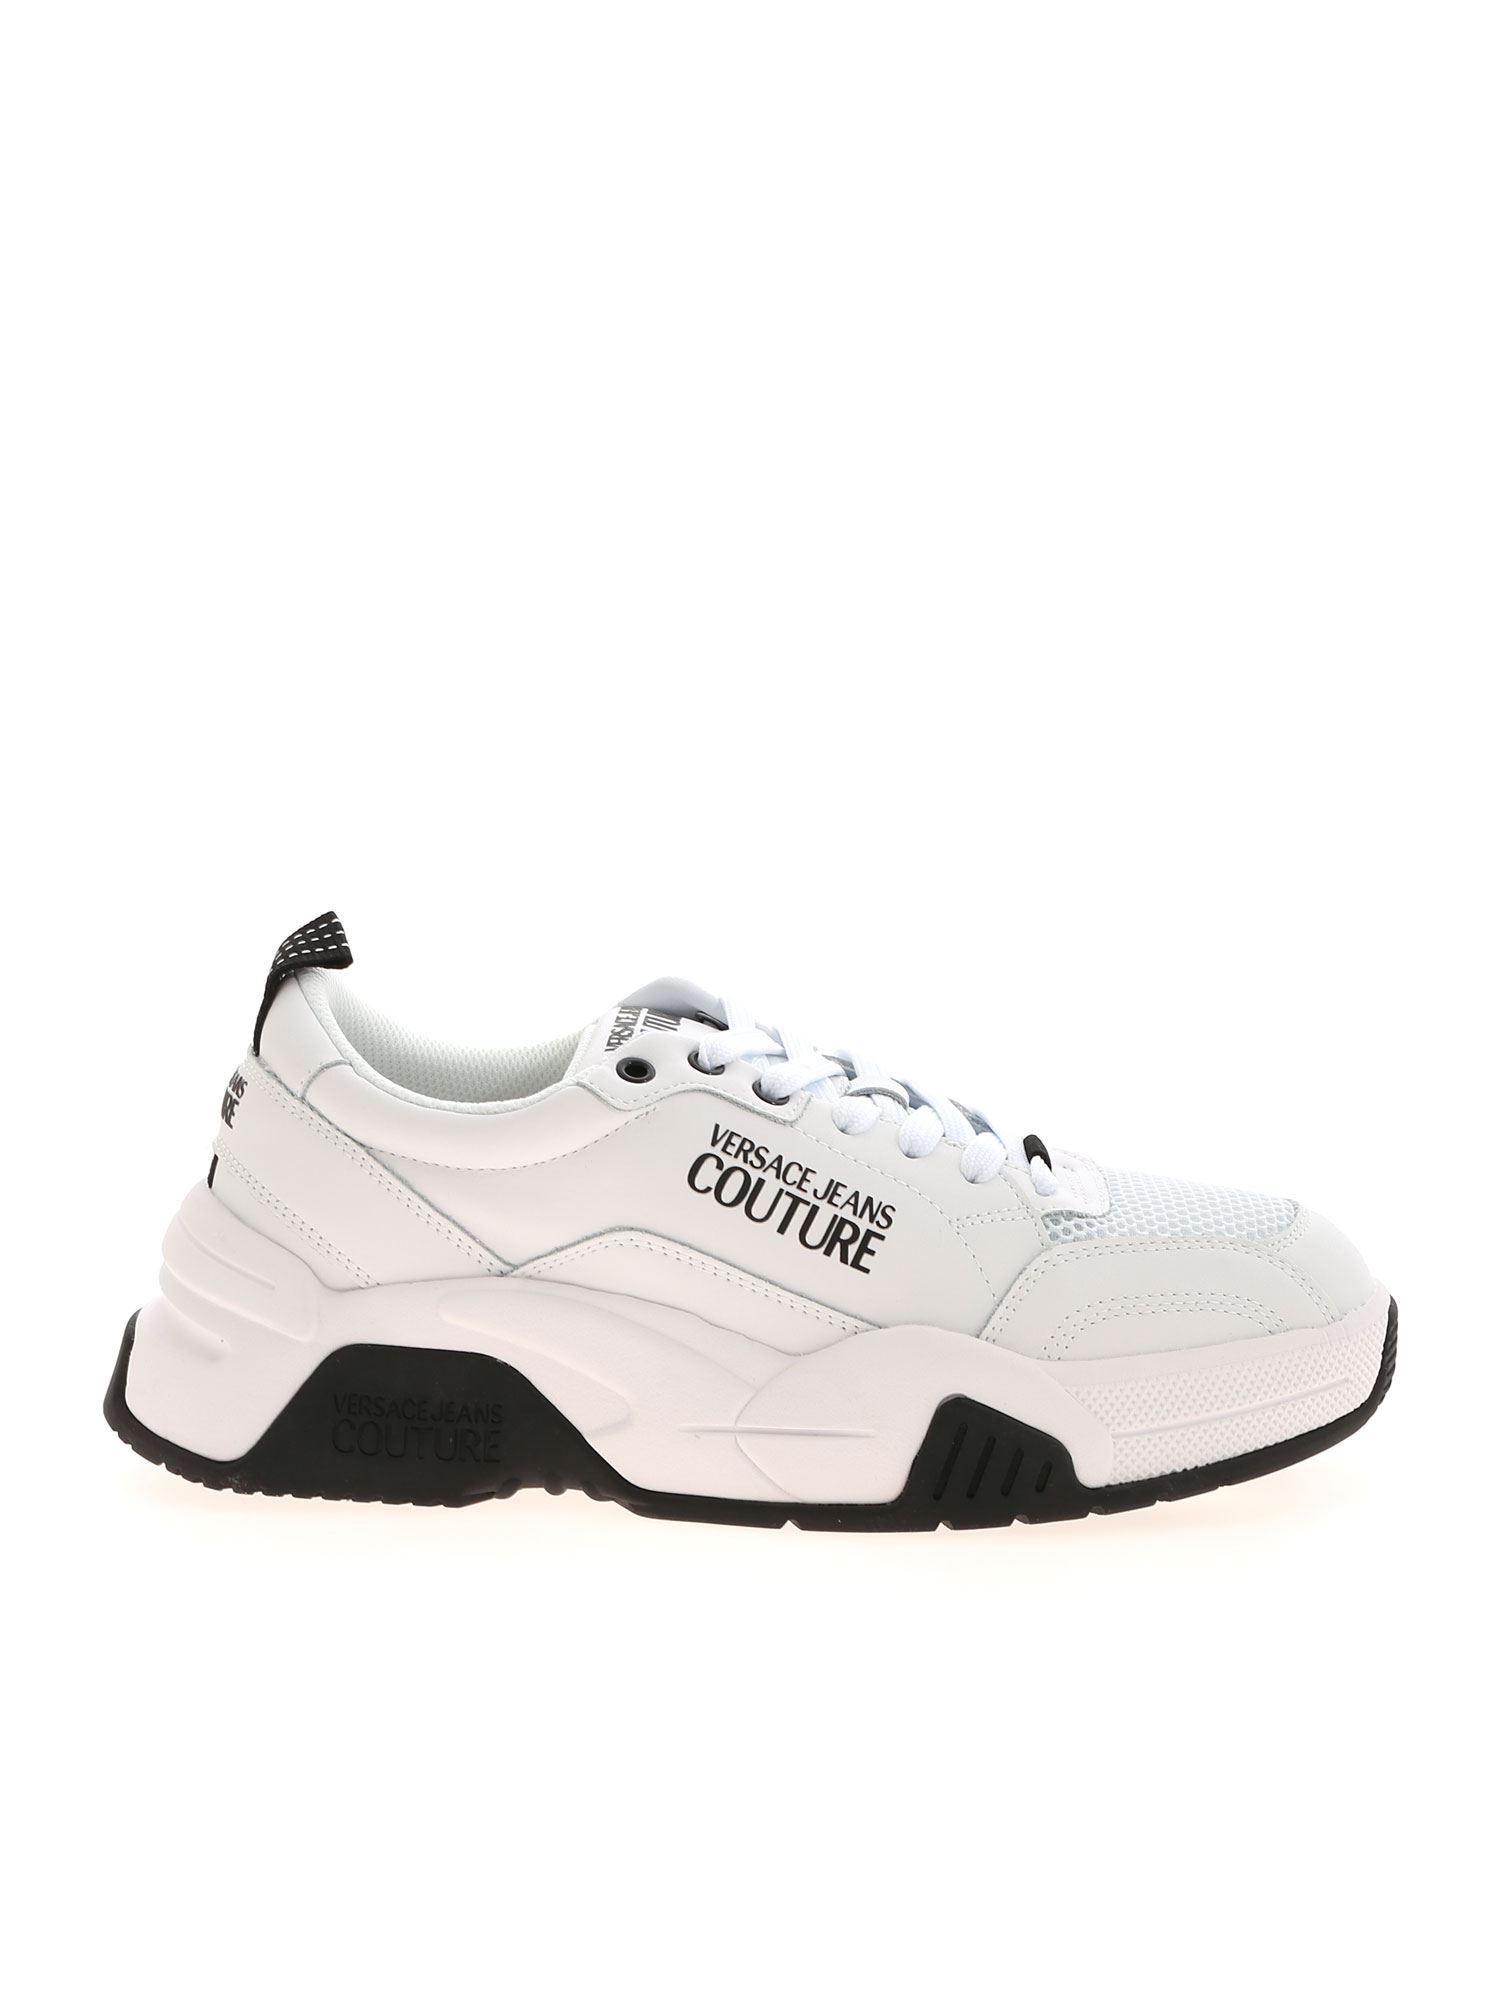 Versace Jeans Couture LOGO SNEAKERS IN WHITE